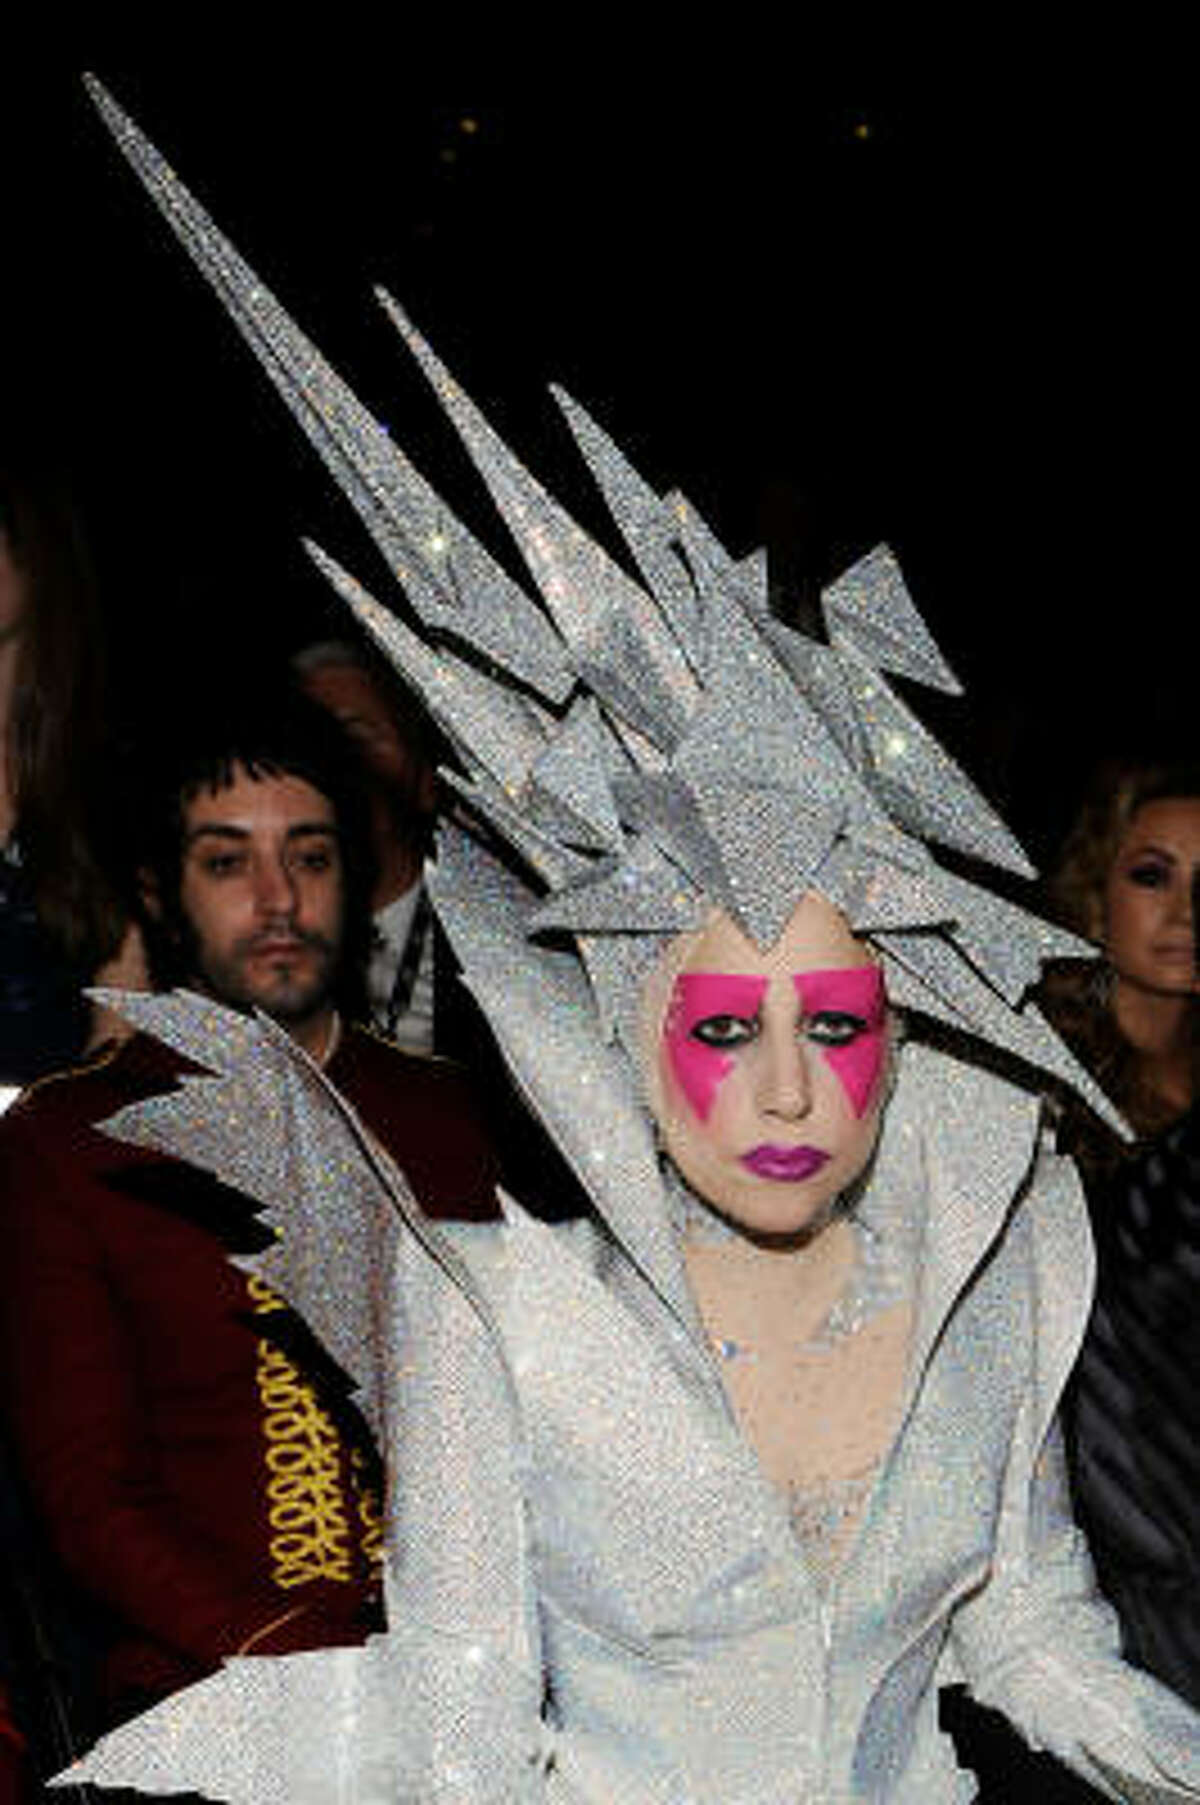 He designed this meteorite headpiece Lady Gaga wore to the Grammys.